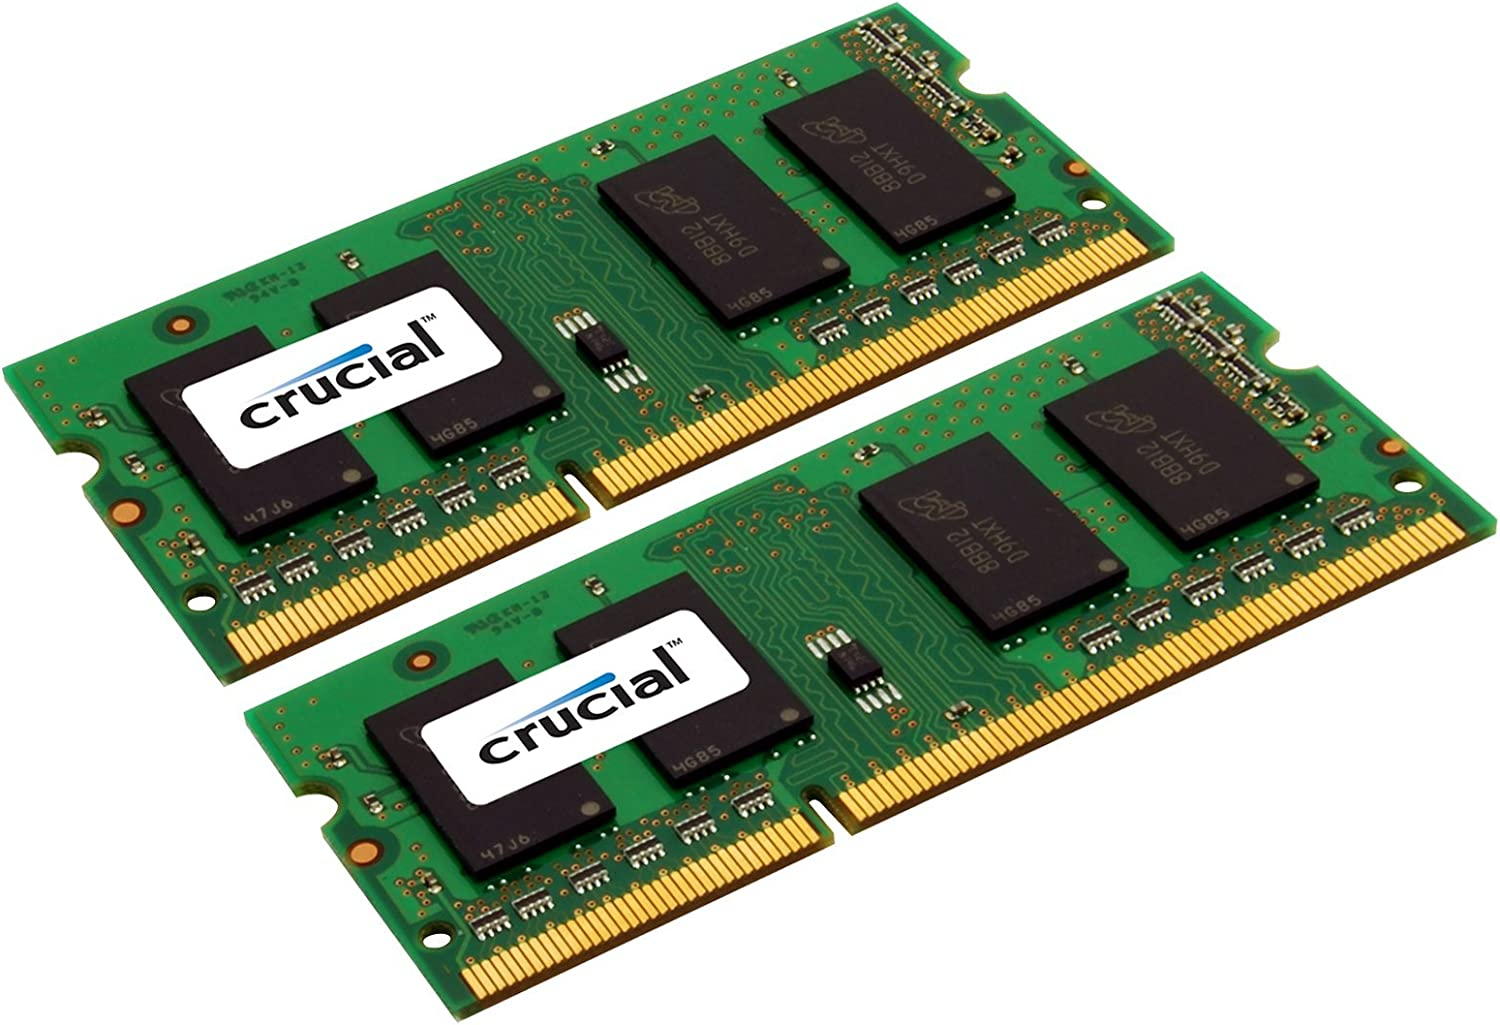 Crucial 8GB Kit (4GBx2) DDR3 1333 MT/s (PC3-10600) CL9 SODIMM 204-Pin 1.35V/1.5V Notebook Memory Modules CT2KIT51264BF1339